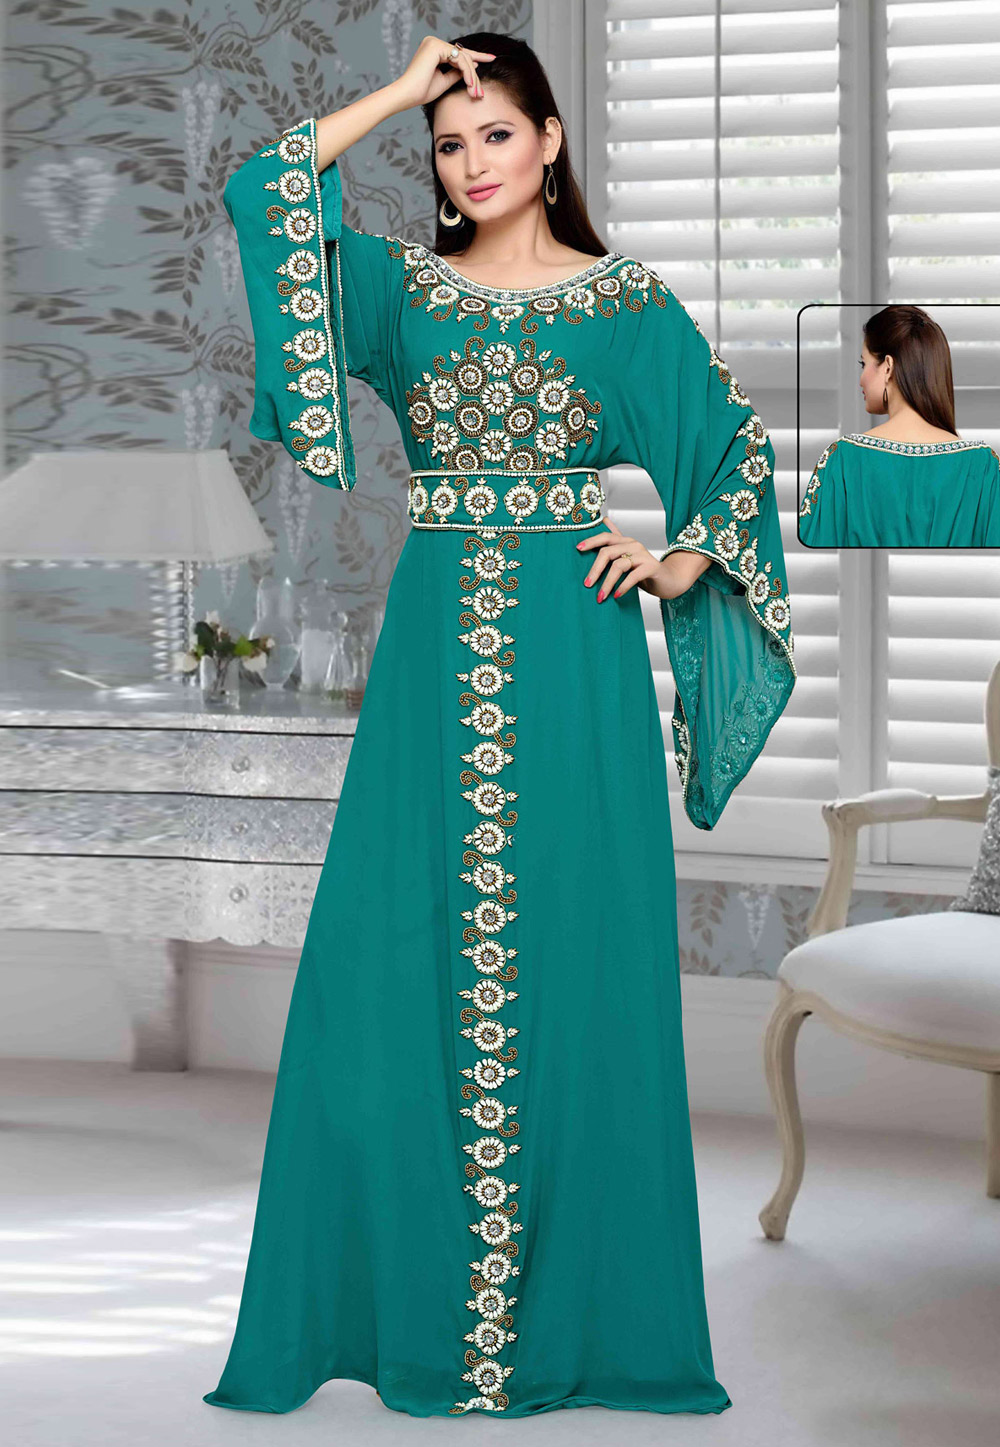 Teal Green Faux Georgette Embroidered Readymade Kaftan 194733